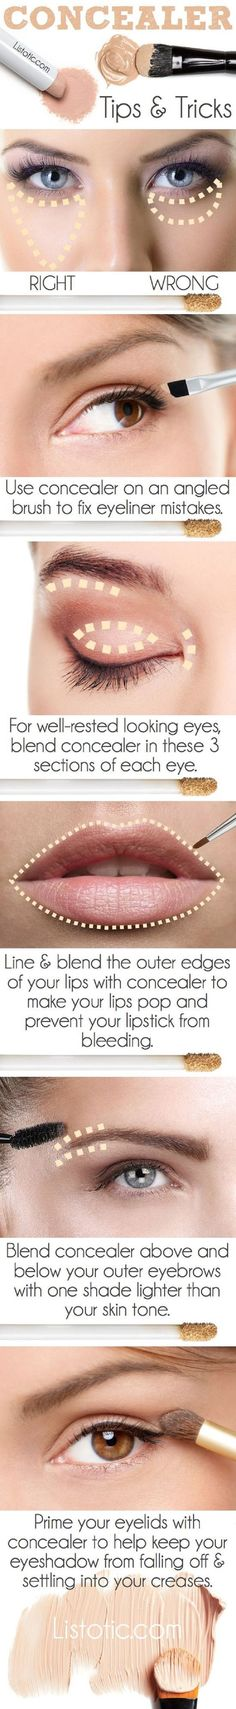 Use Your Concealer The Right Way - 13 Best Makeup Tutorials and Infographics for Beginners: